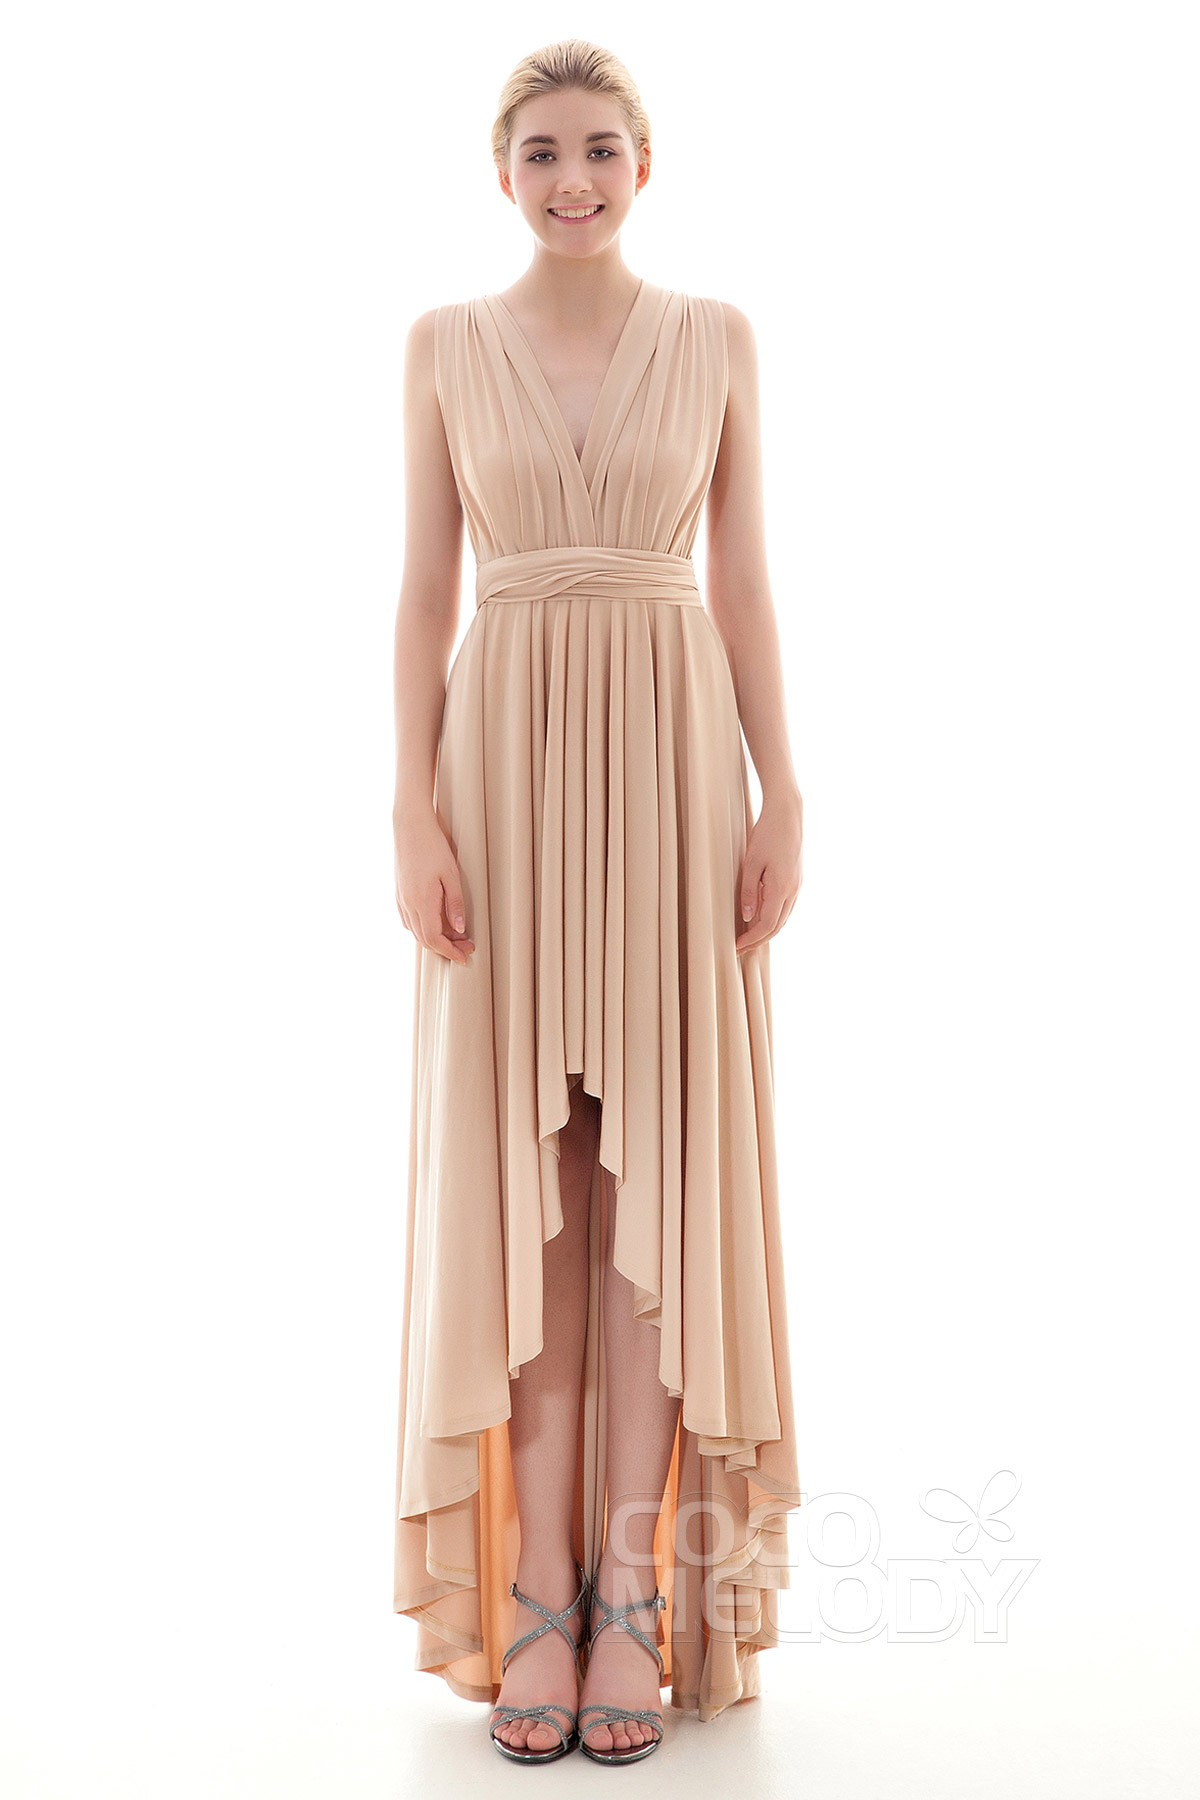 Asymmetrical Knitted Fabric Bridesmaid Dress COED16001 | Cocomelody